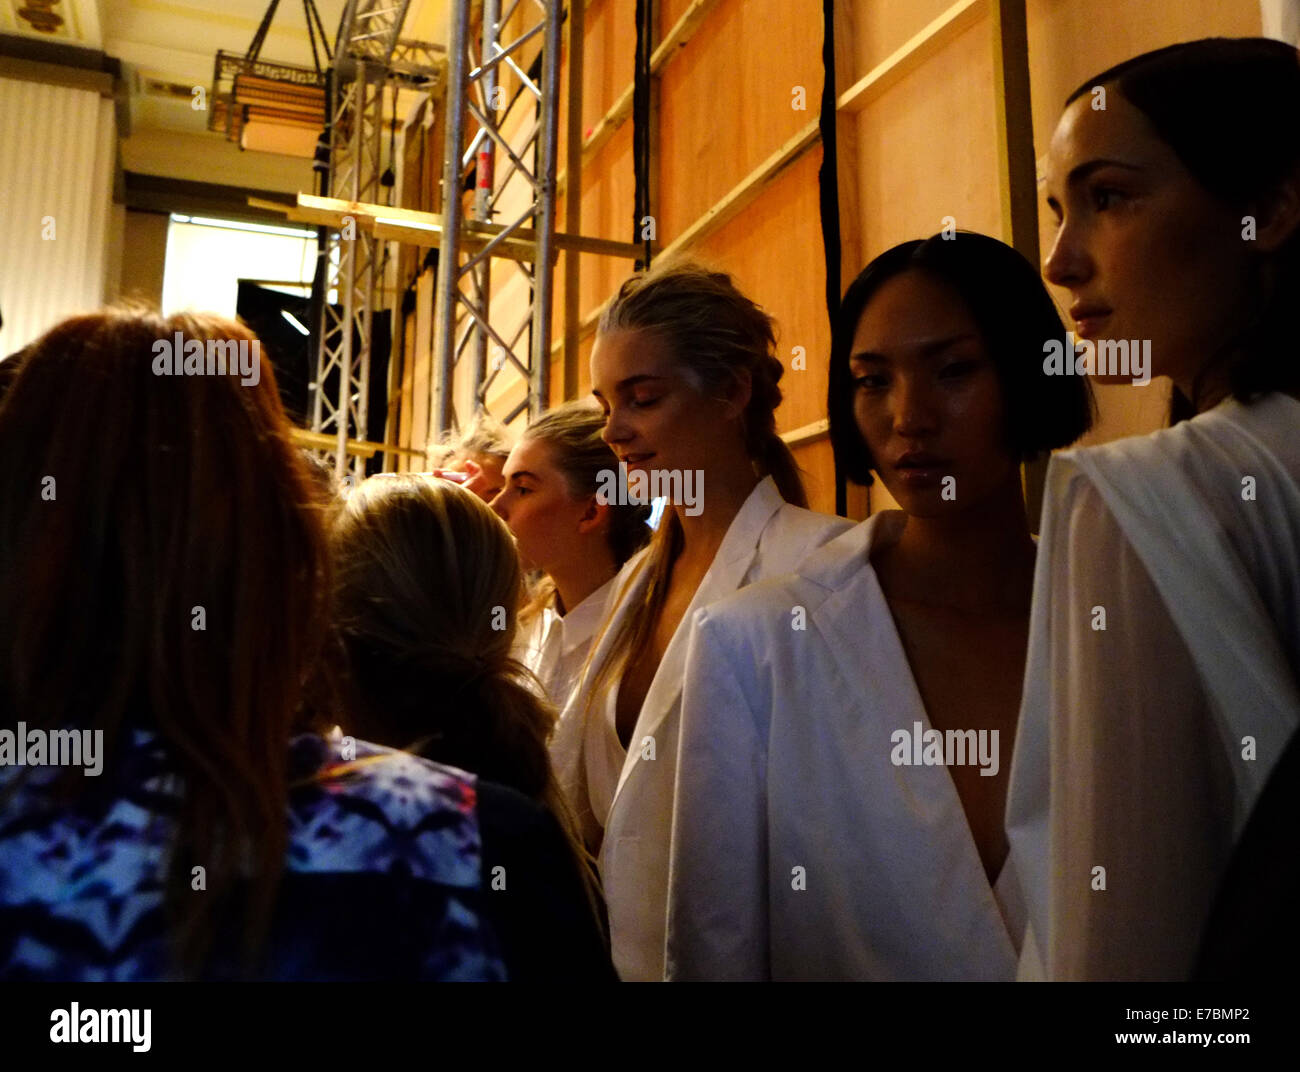 London, UK. 12th September, 2014. London Fashion Week SS15: Backstage at 'Ones to Watch'  Models wearing - Stock Image